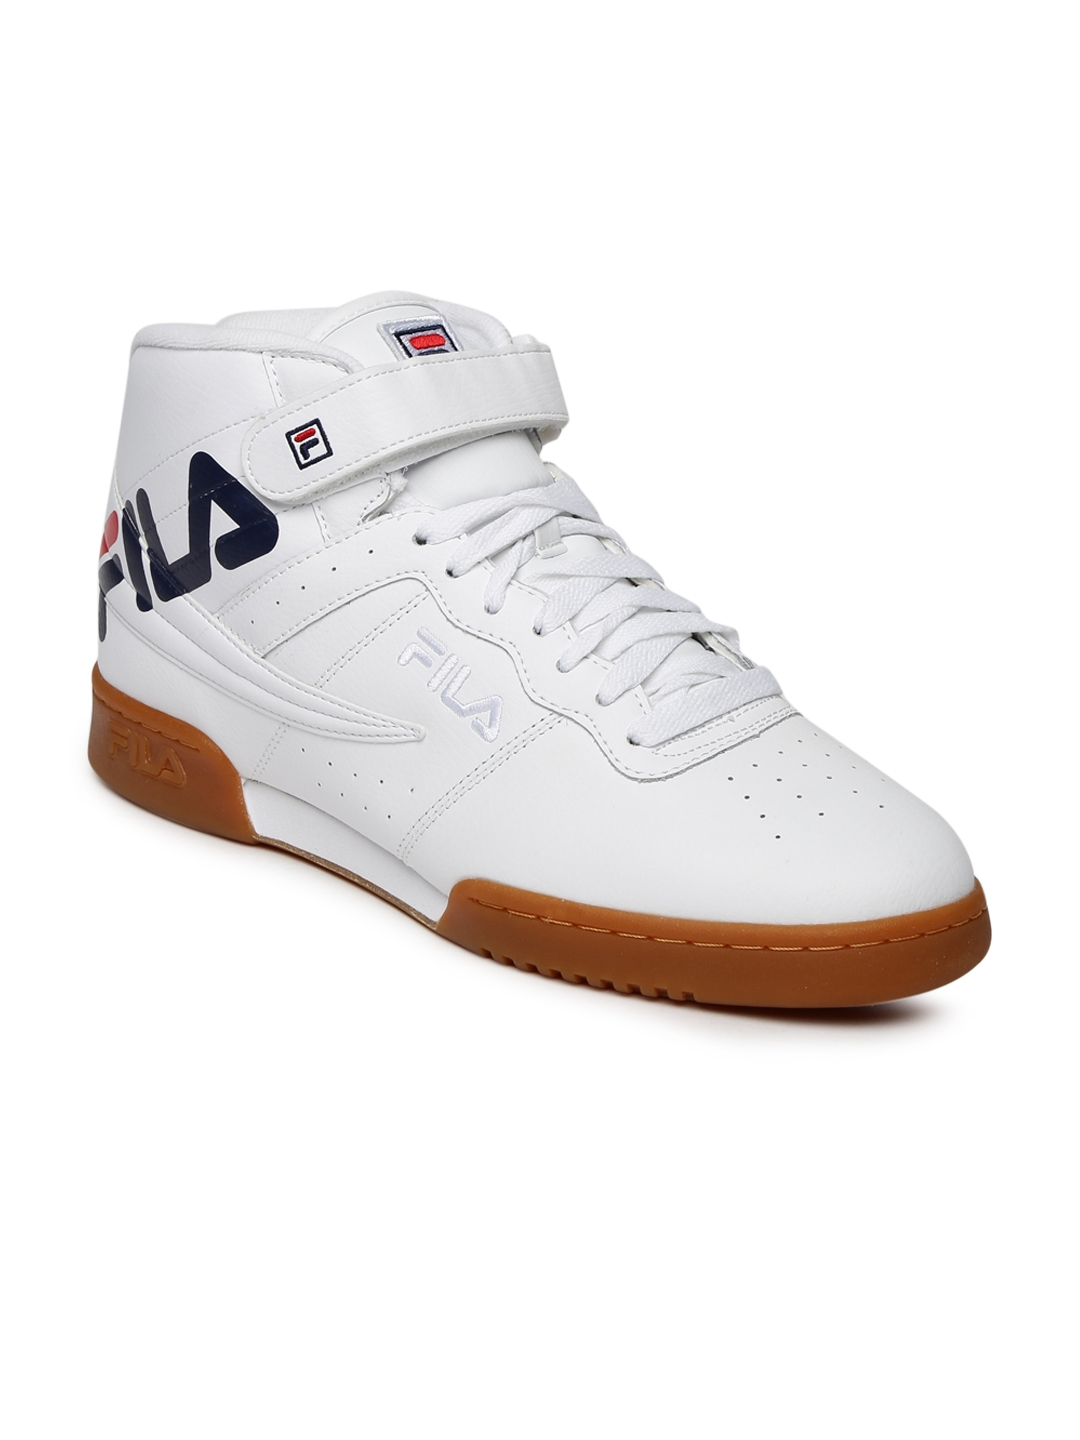 46e8af76c1a5 Buy FILA Men White Perforated F 13 LOGO Mid Top Sneakers - Casual ...